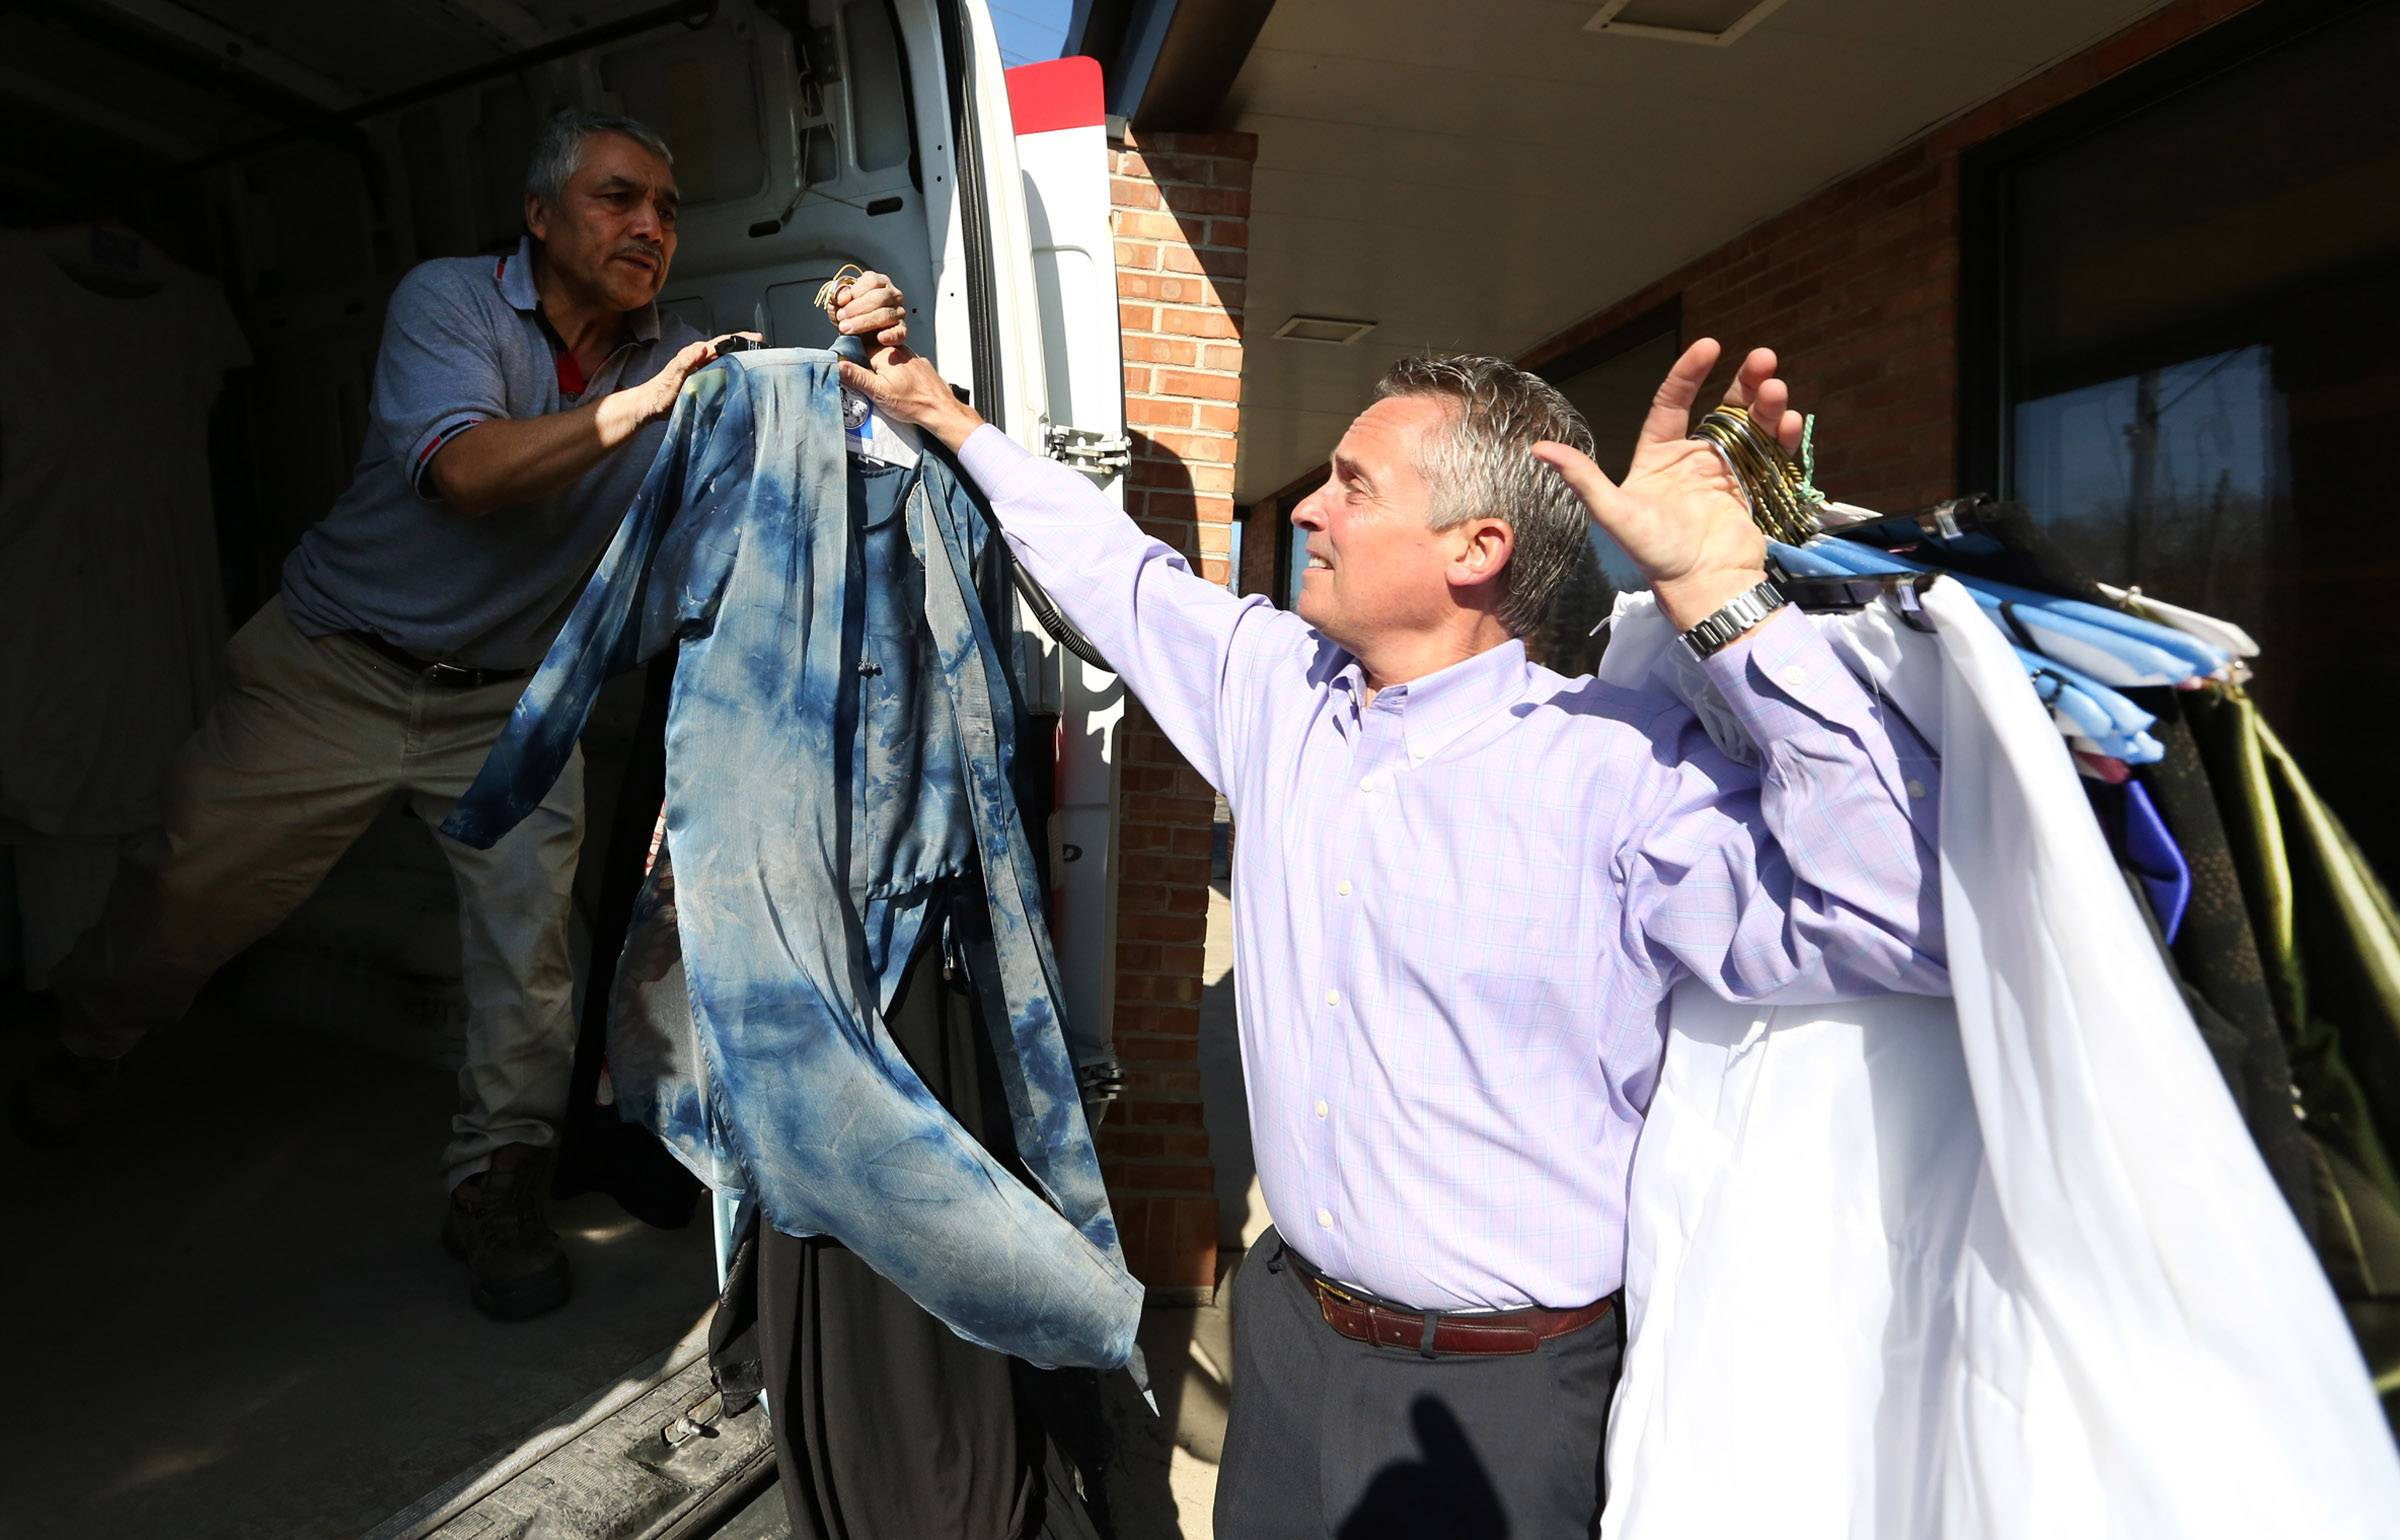 Tom Zengeler, owner of Zengeler Cleaners, hands donated prom dresses to Enrique Tovar in a van on Saturday at the cleaners in Northbrook. The dresses are being delivered to Chicago for girls in need as part of the Glass Slipper Project.